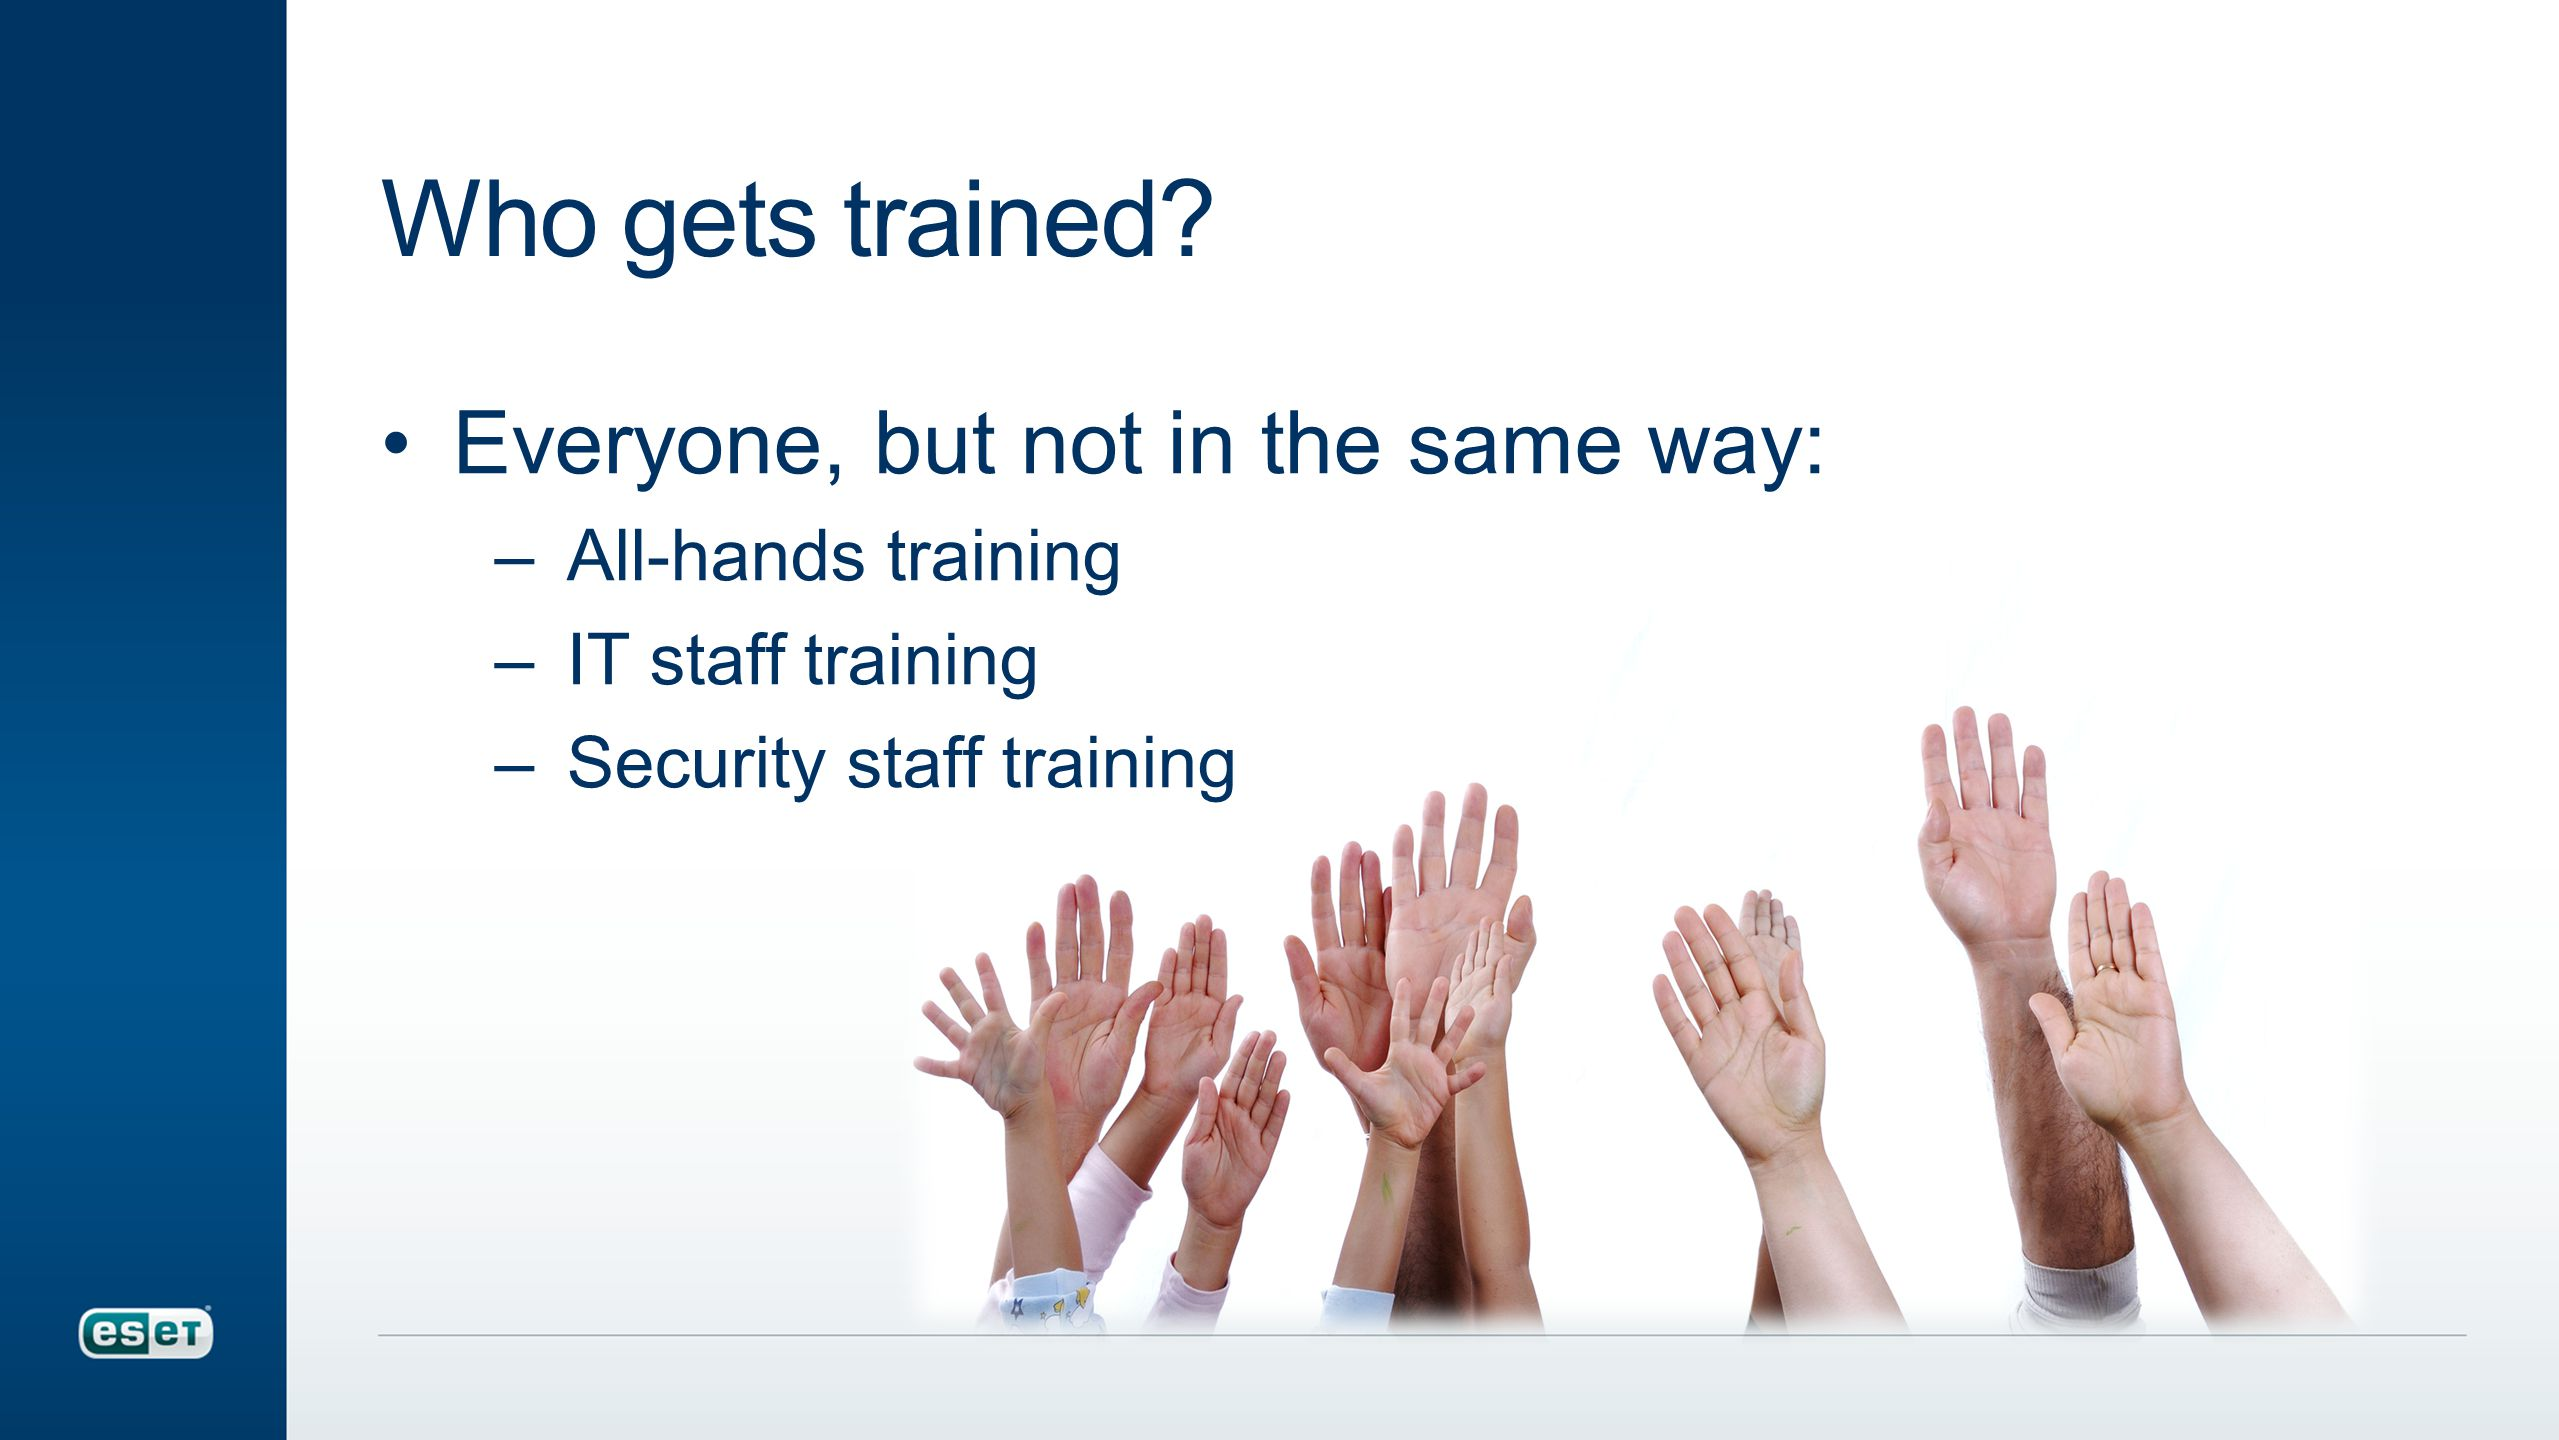 Who gets trained.